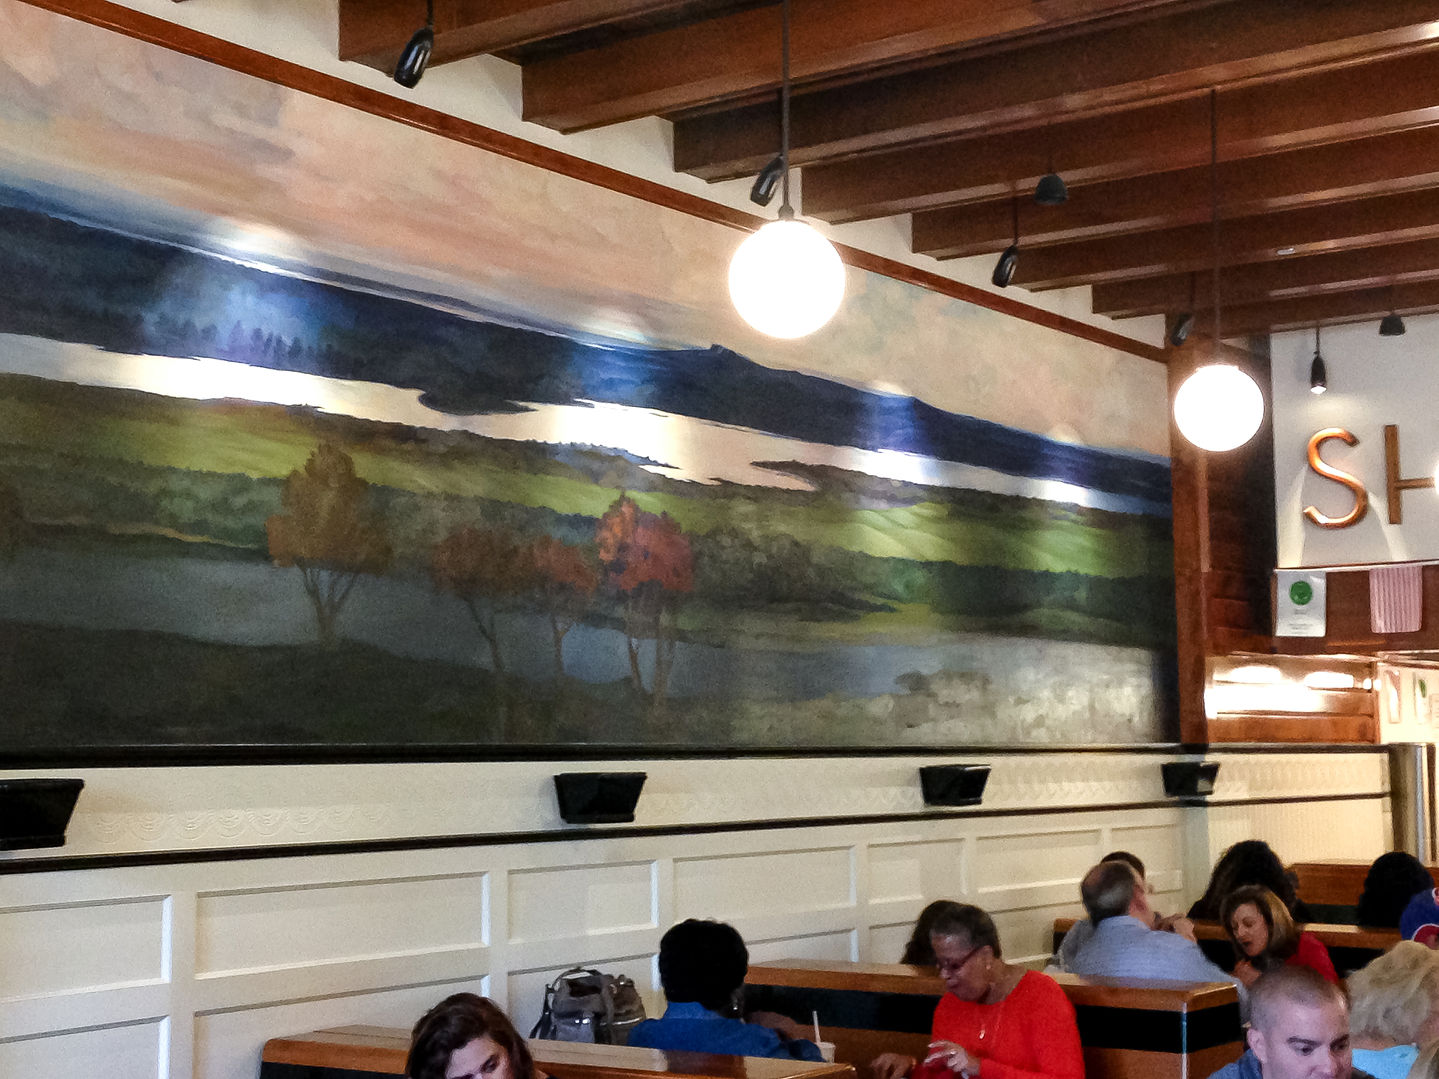 restaurant shake shack hand made mural new york chicago